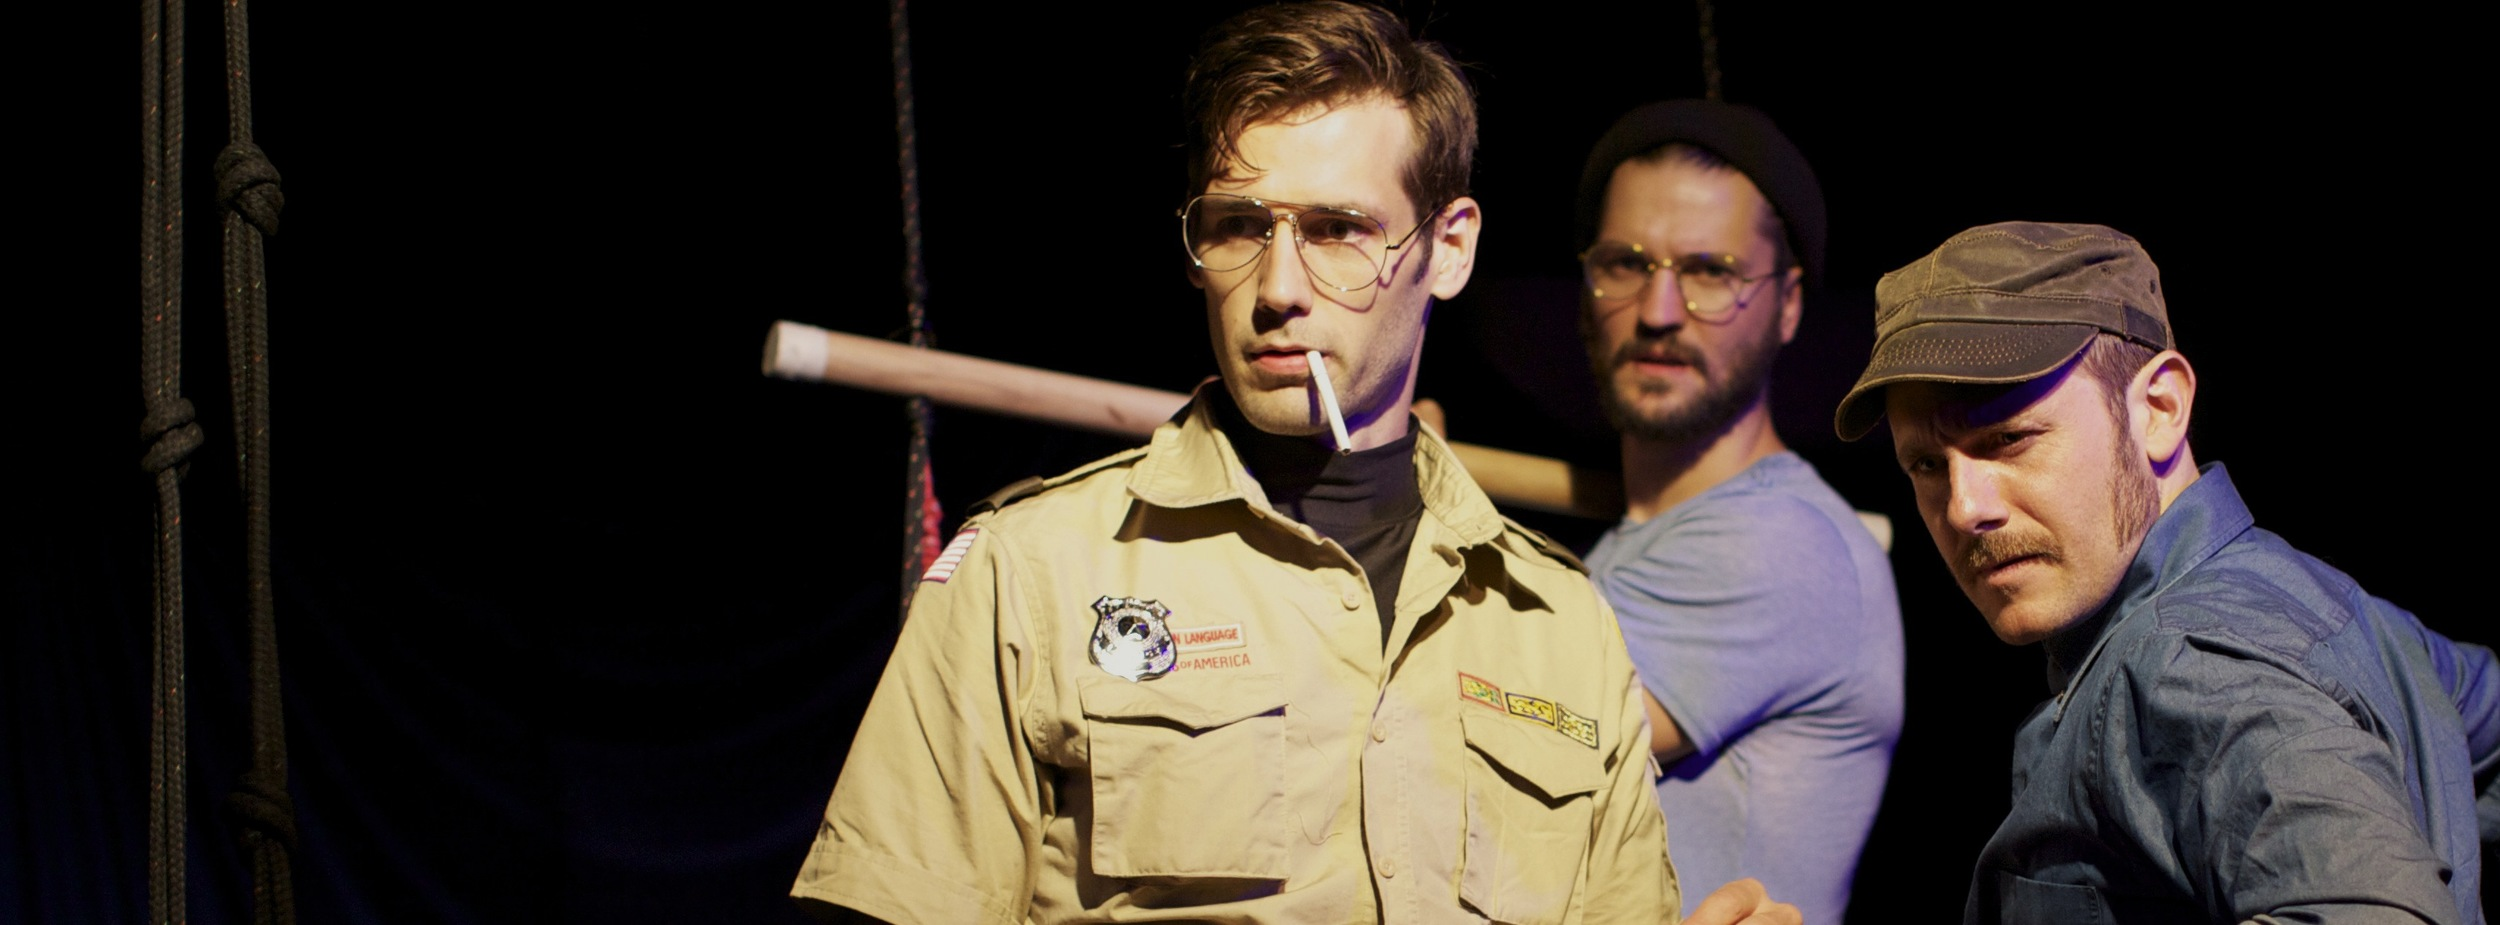 John Behlmann, Richard Thieriot and Dan Loeser in Not J.A.W.S. presented at The Muse by Fight or Flight